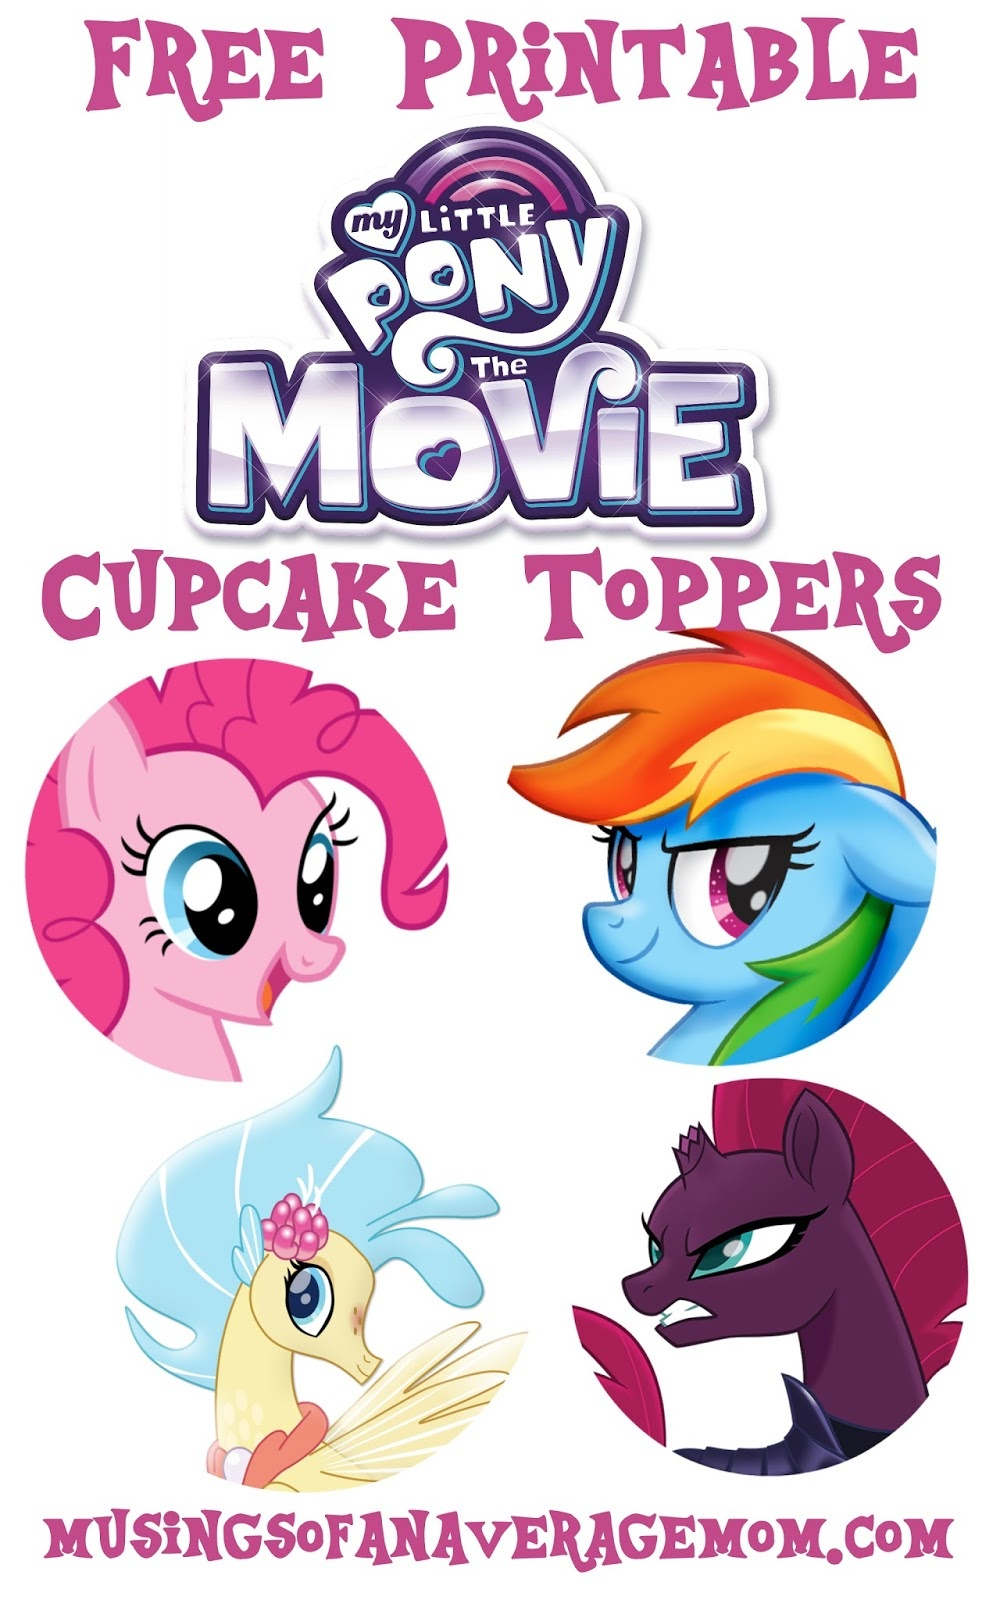 Musings Of An Average Mom: My Little Pony Movie - Cupcake Toppers - My Little Pony Free Printables